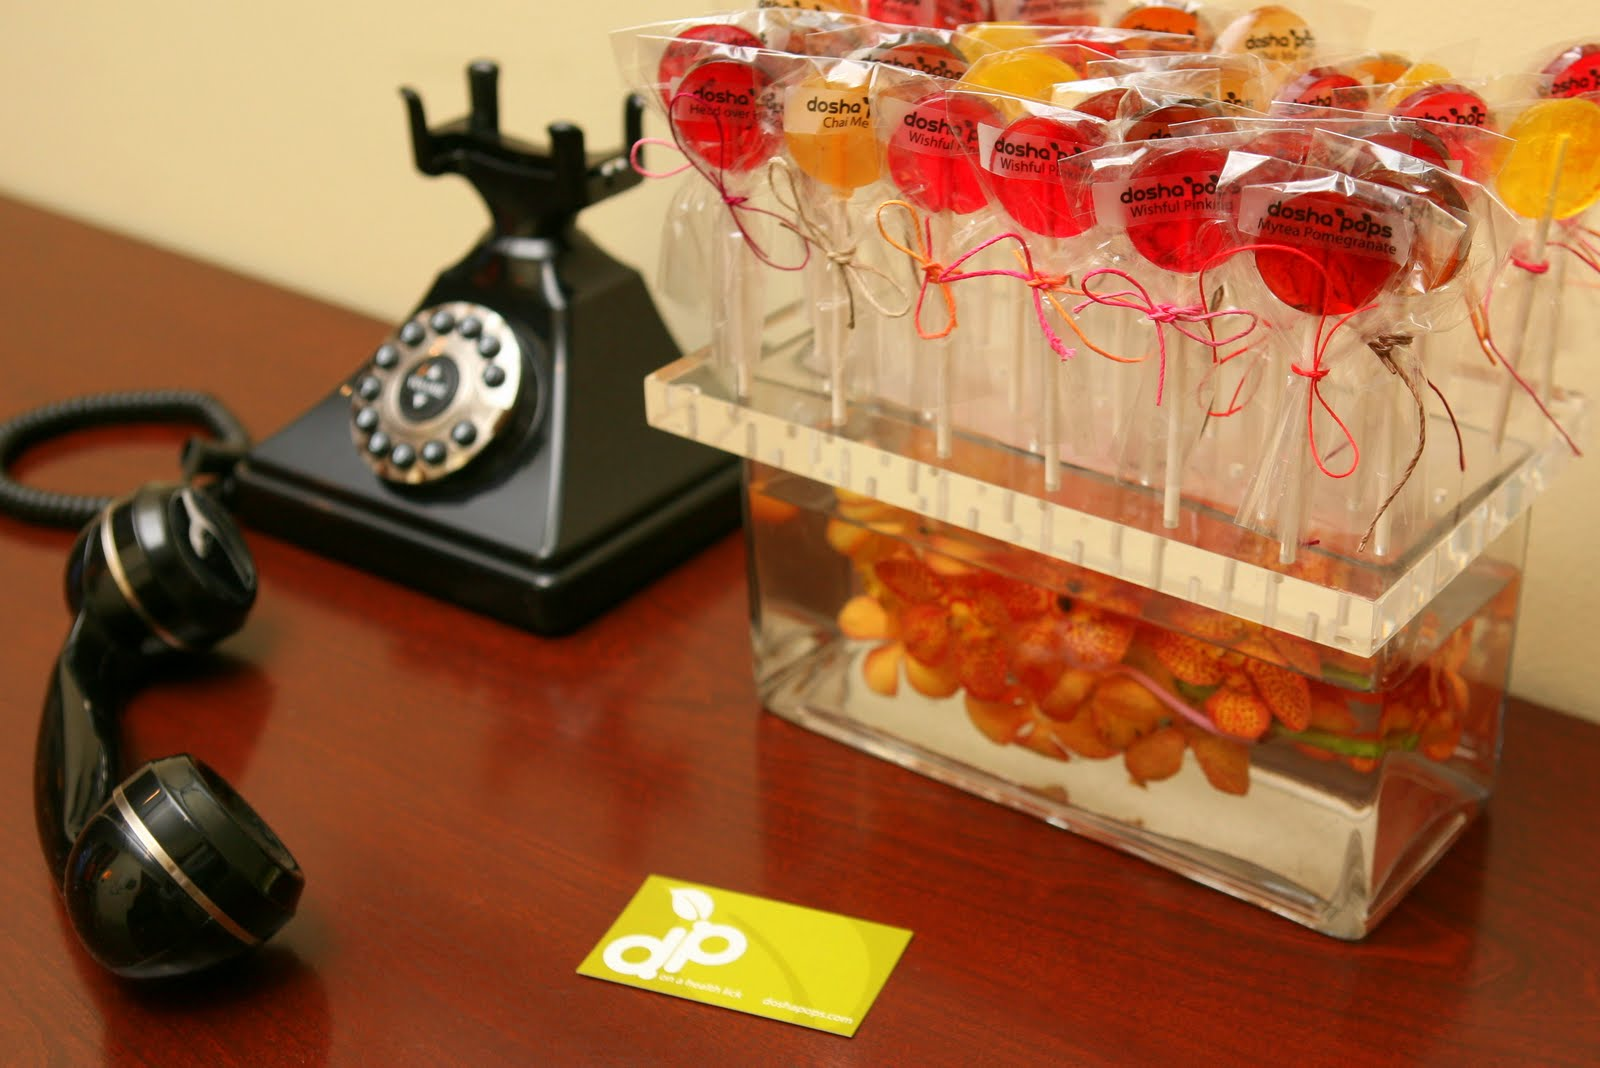 Dosha Pops display stand holding lollipops and flowers on a table with business card and old fashioned phone